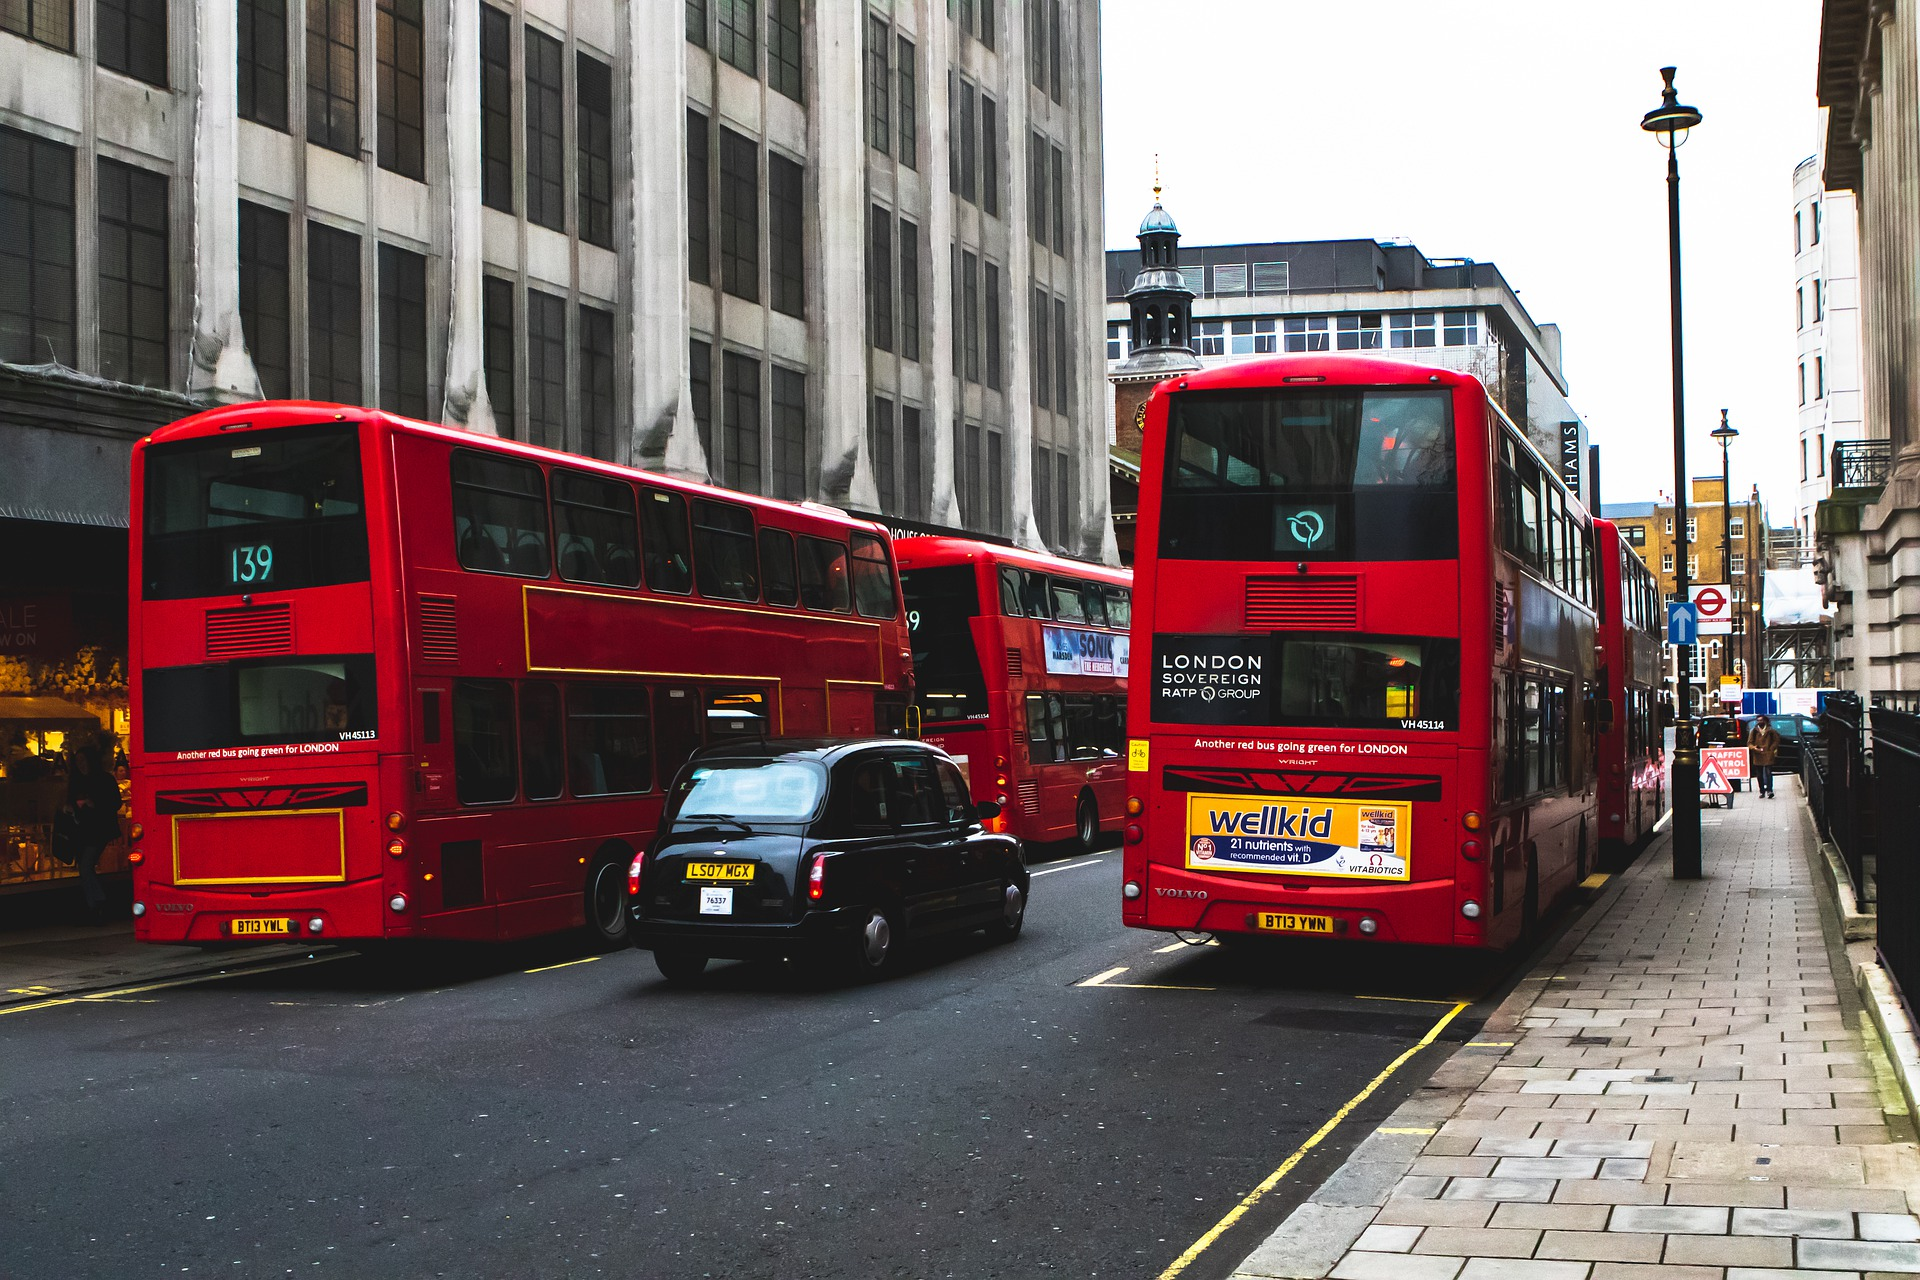 London buses now meet ULEZ criteria